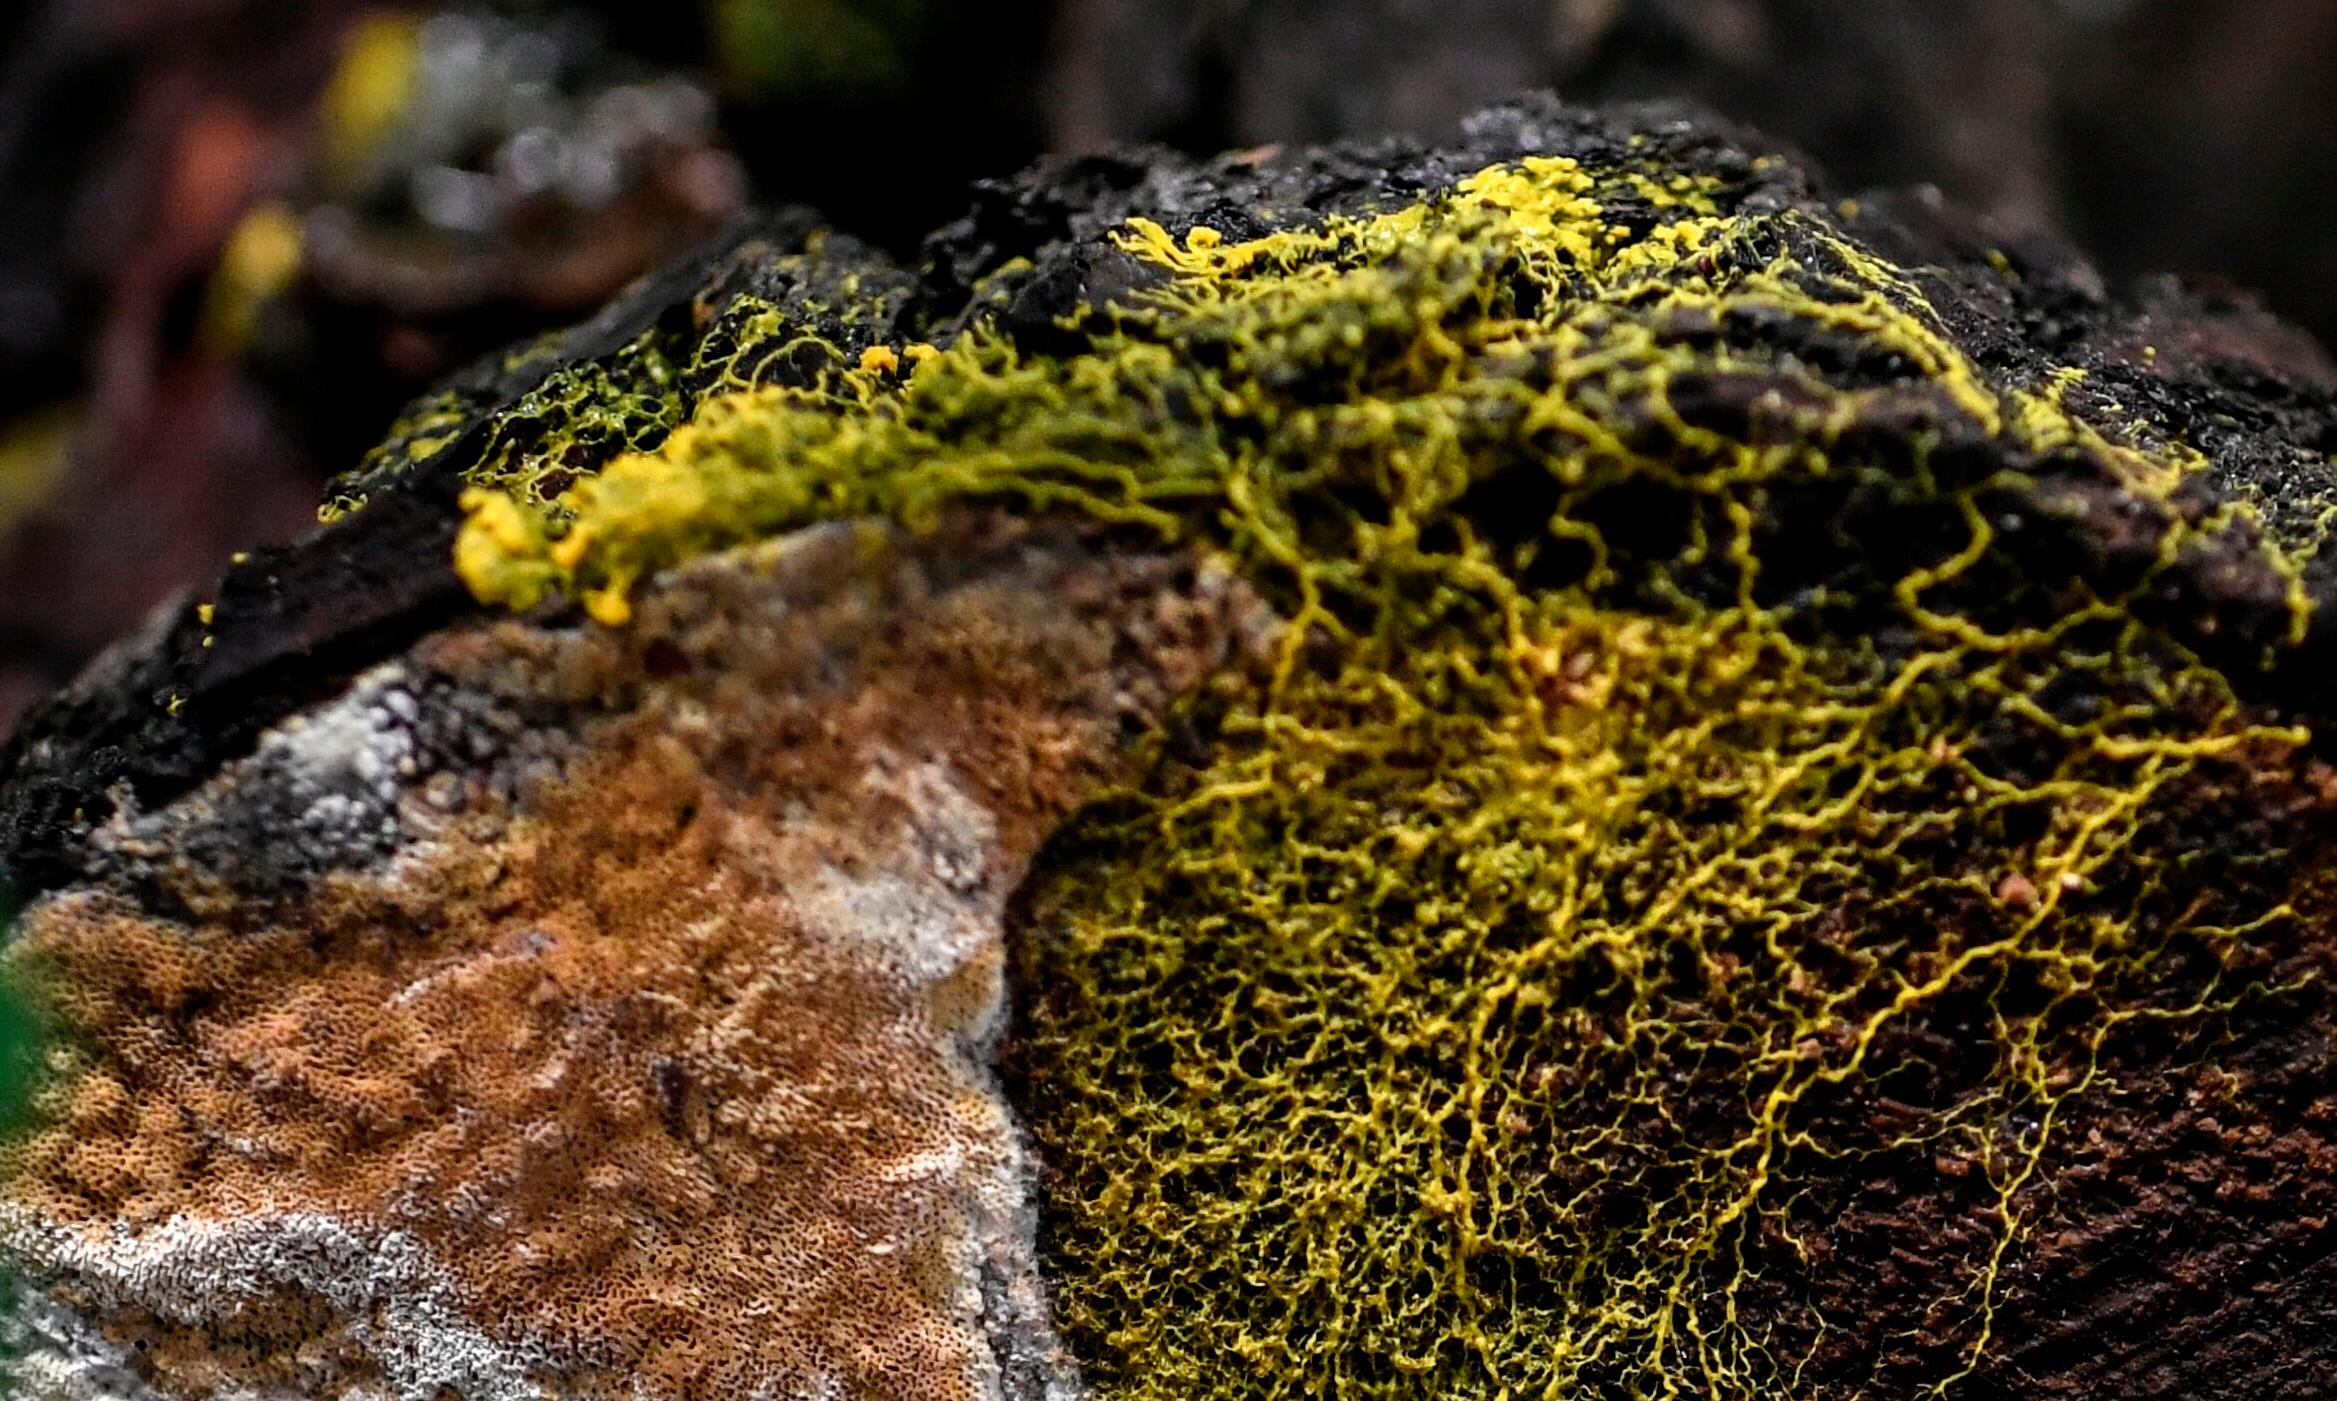 The 'blob': zoo showcases slime mold with 720 sexes that can heal itself in minutes